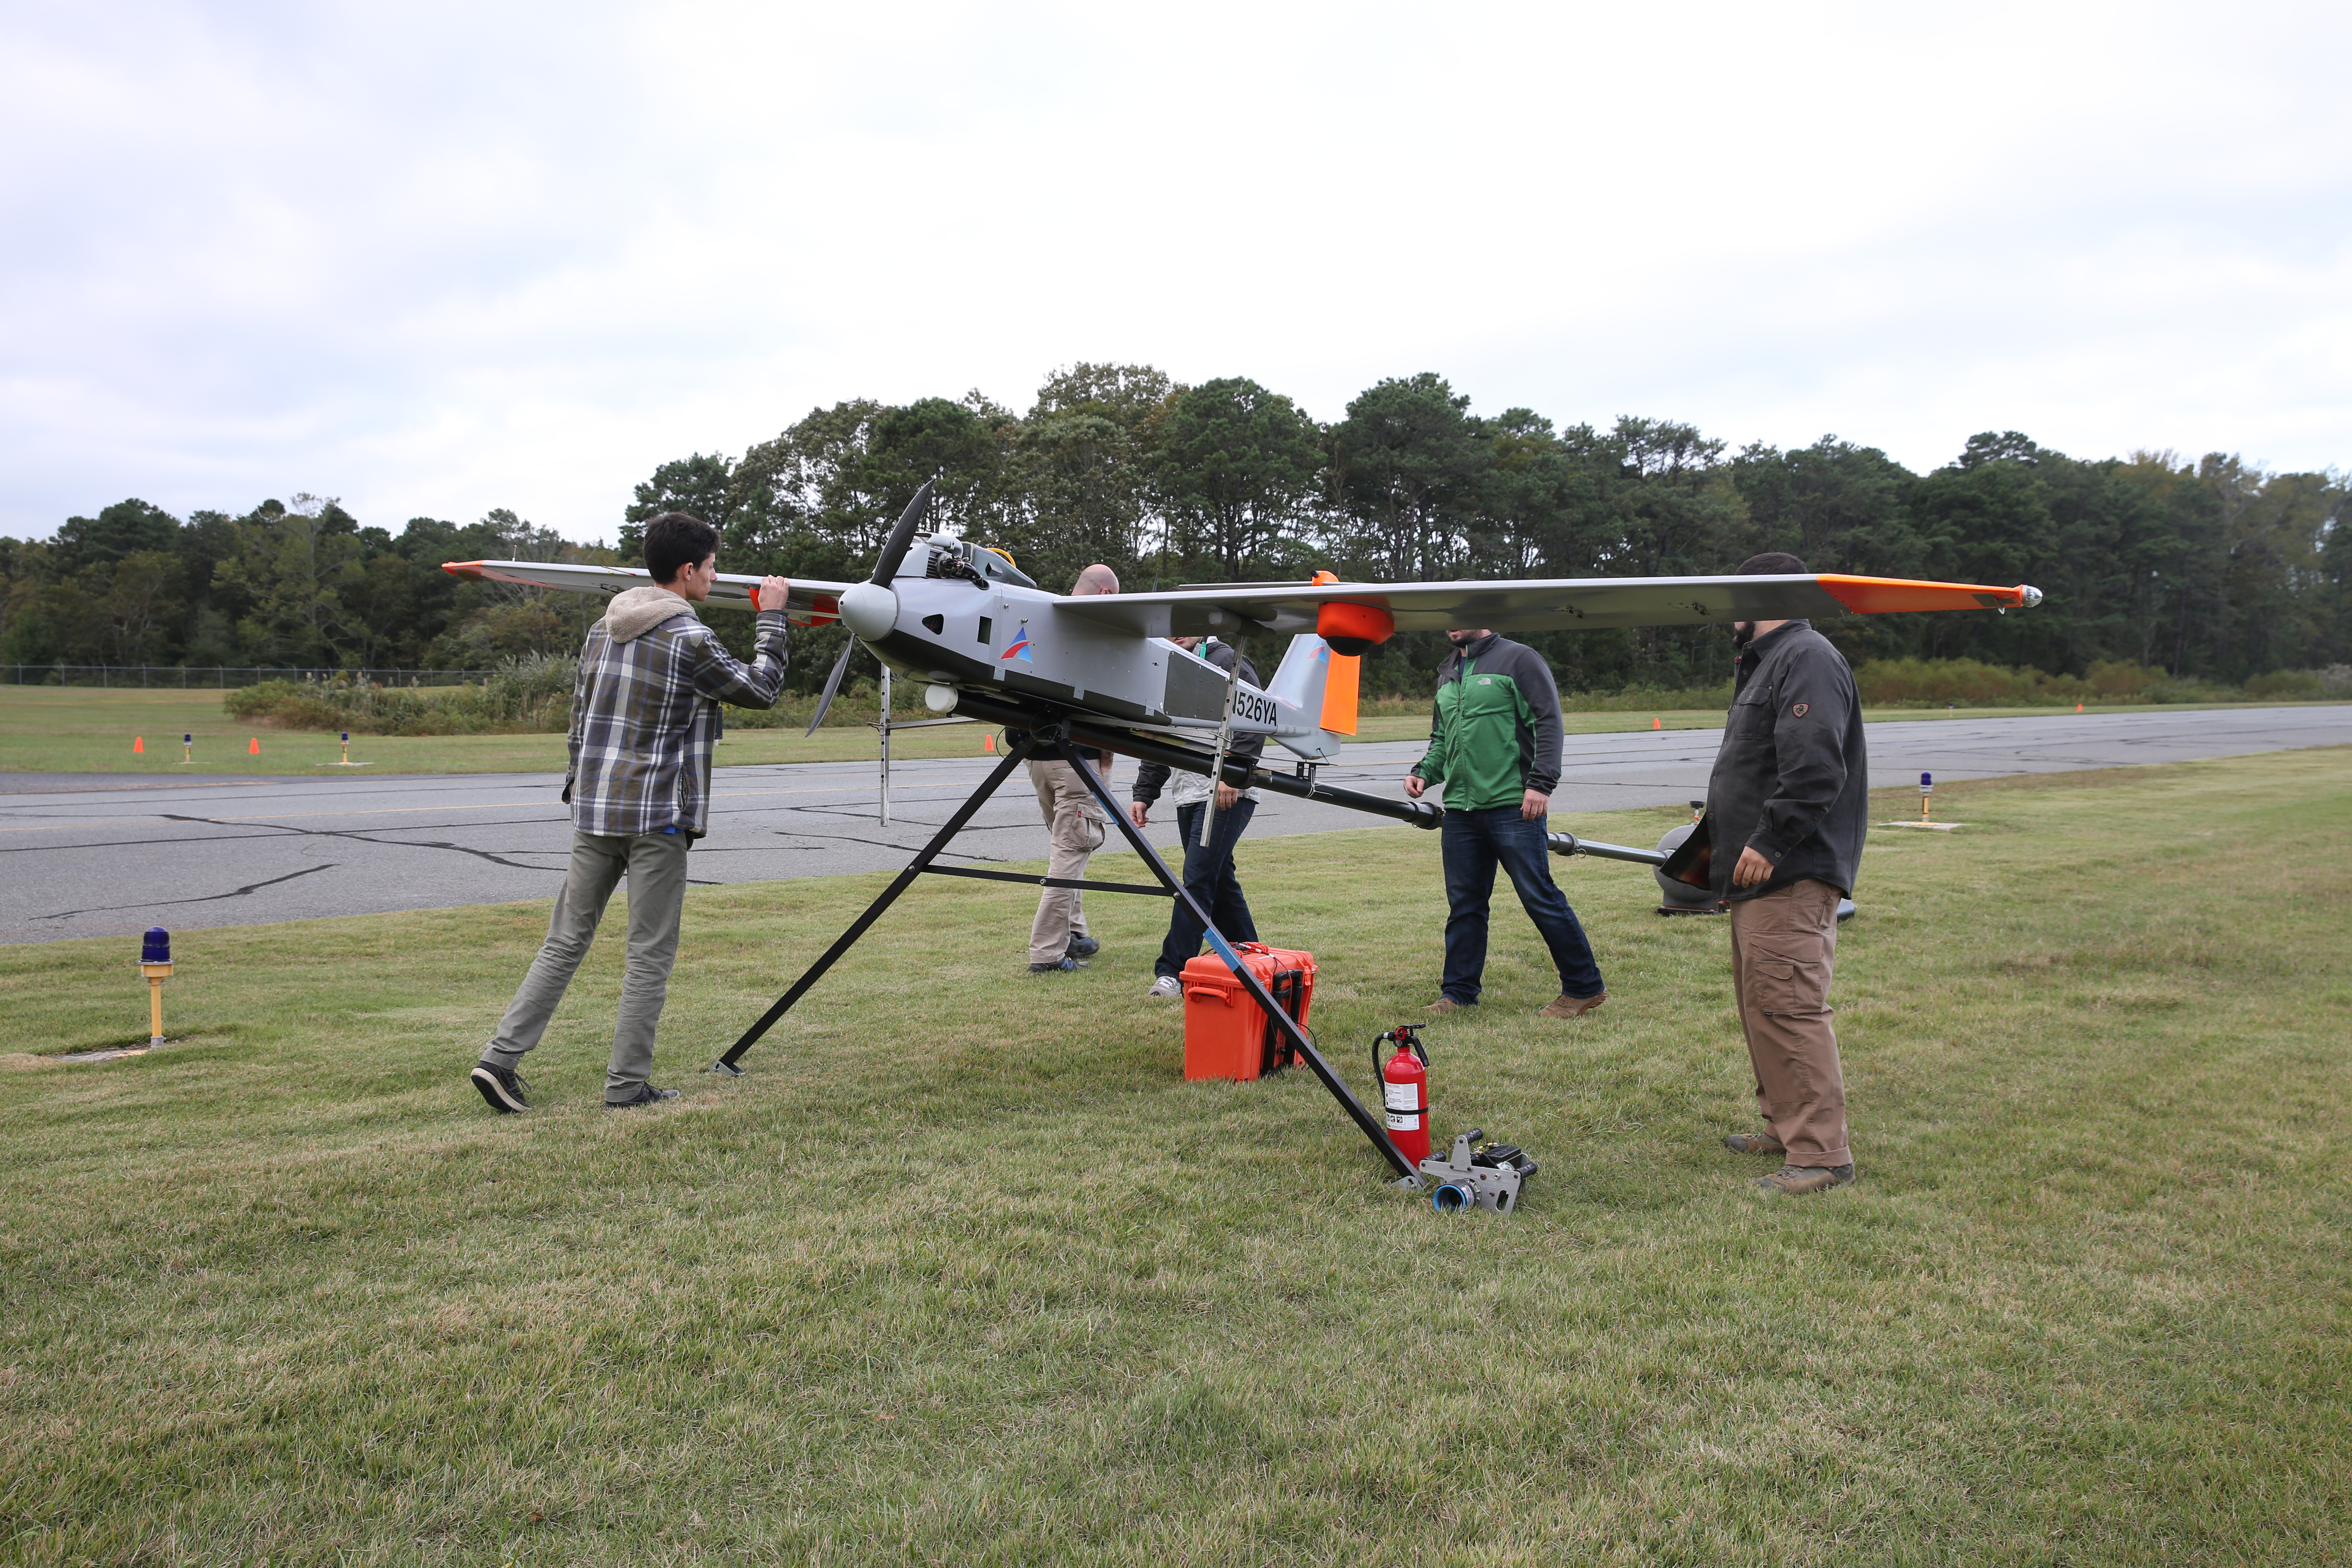 A Verizon drone being tested